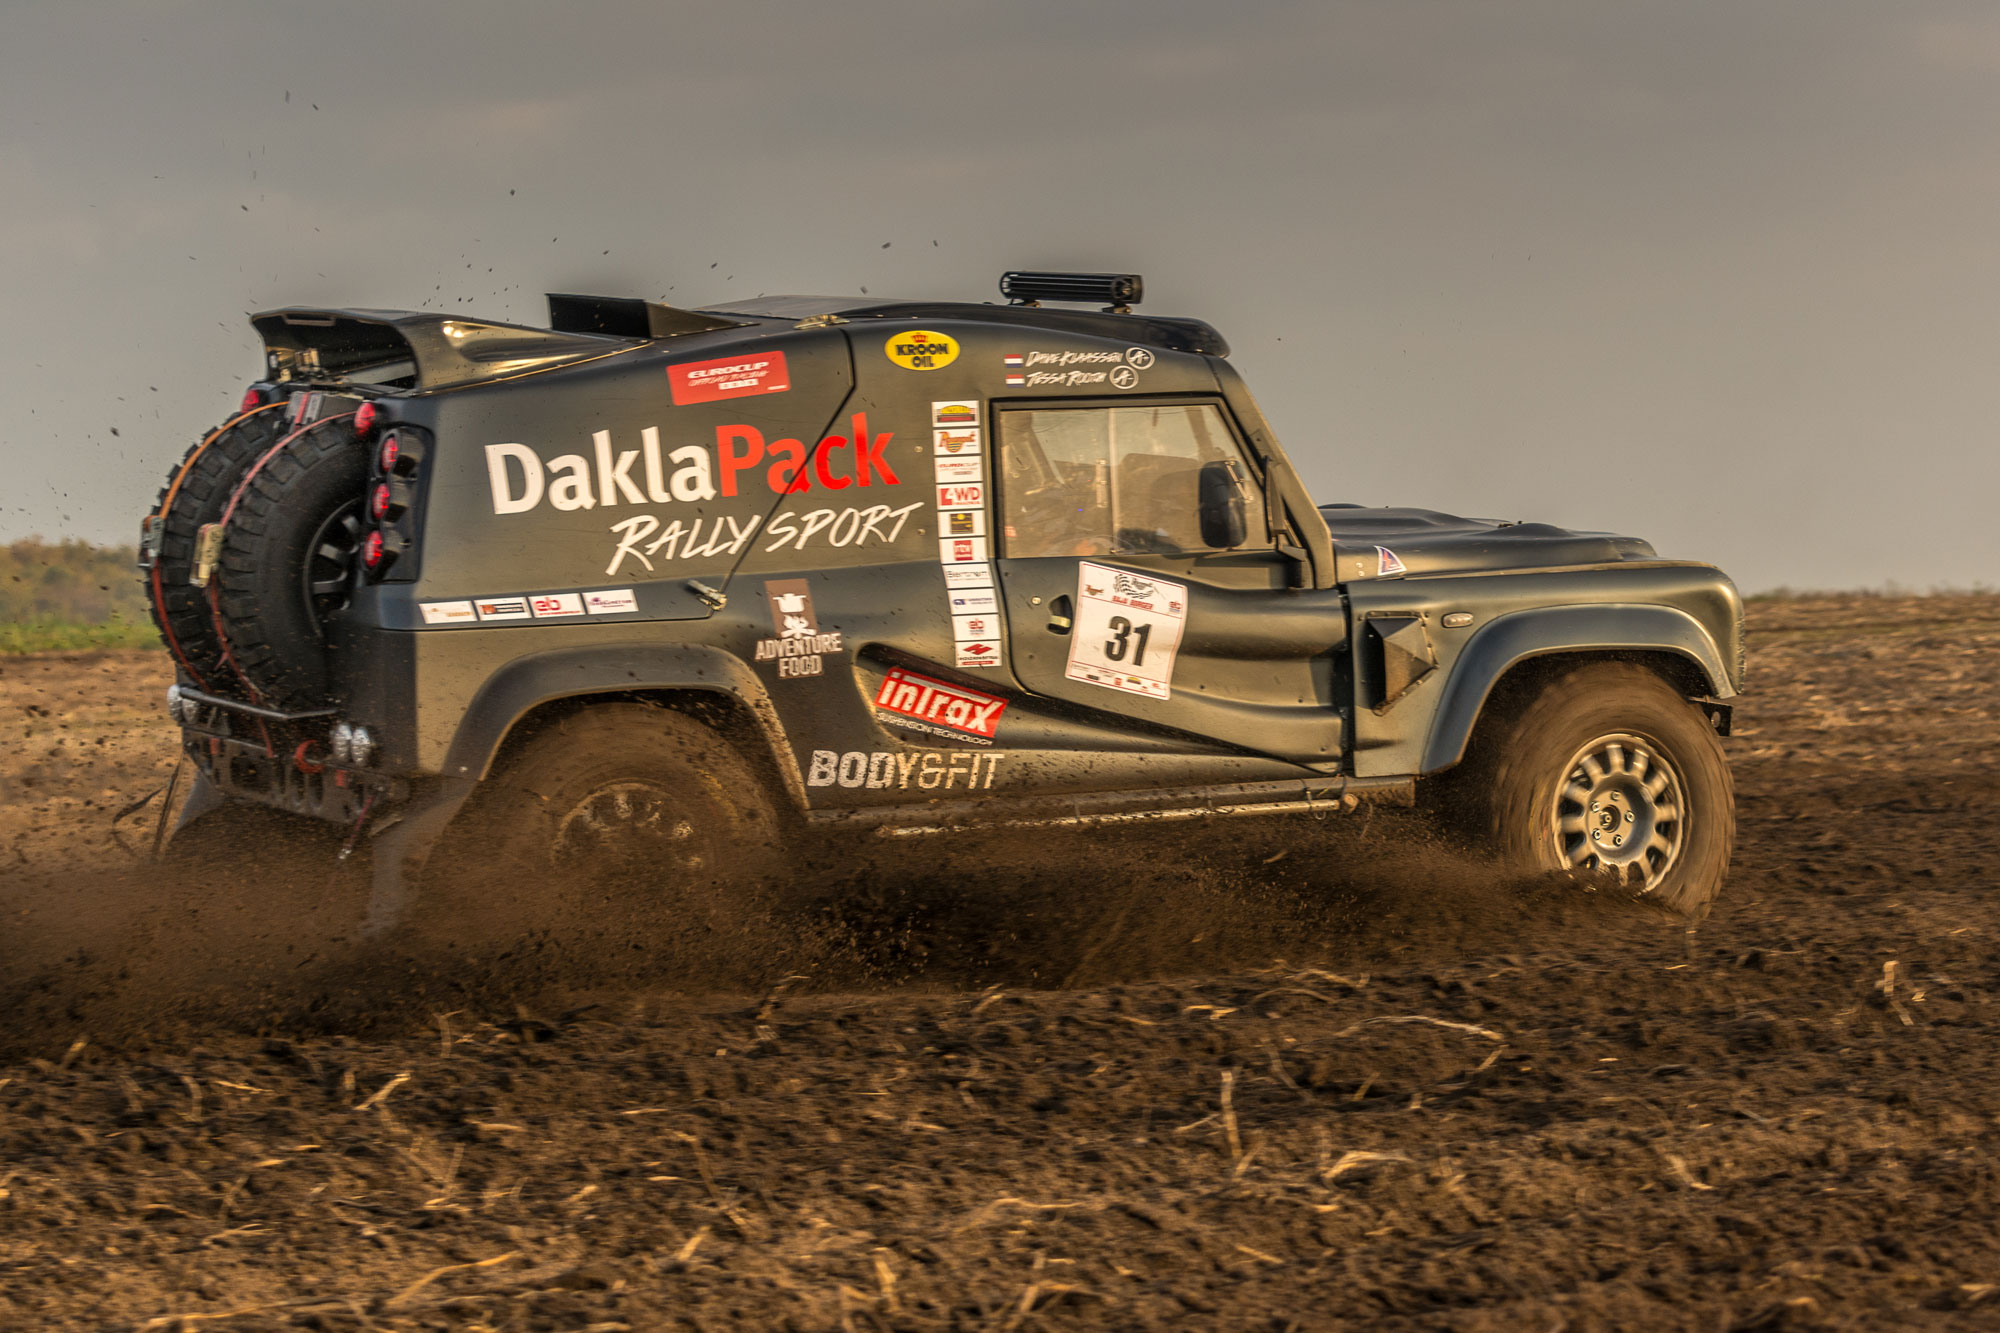 Daklapack Rallysport: 'Rally rijden is our Way of Life…'